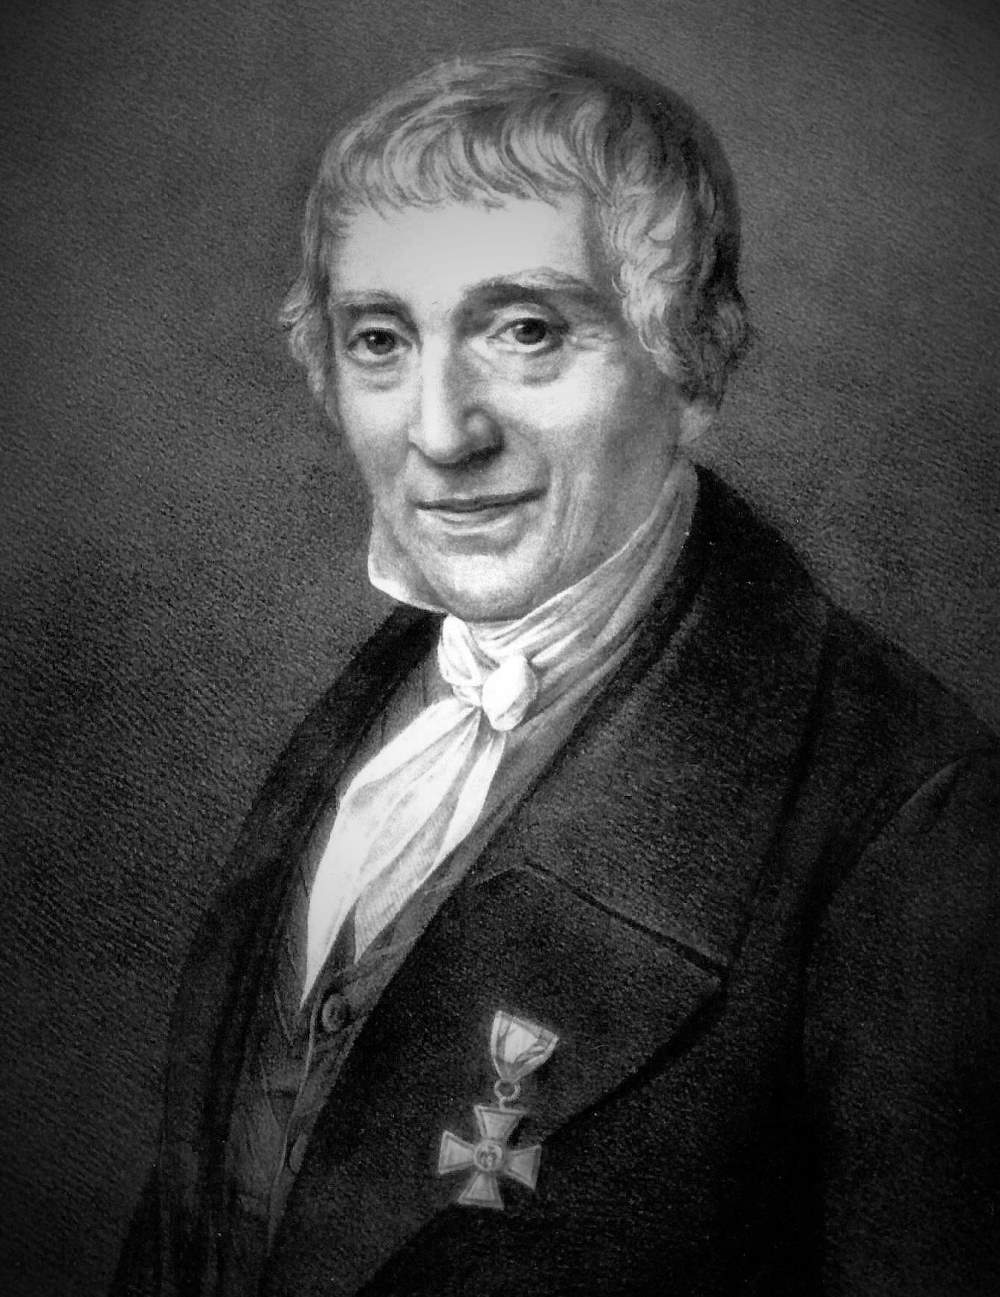 Georg Friedrich Grotefend (1775 - 1853)